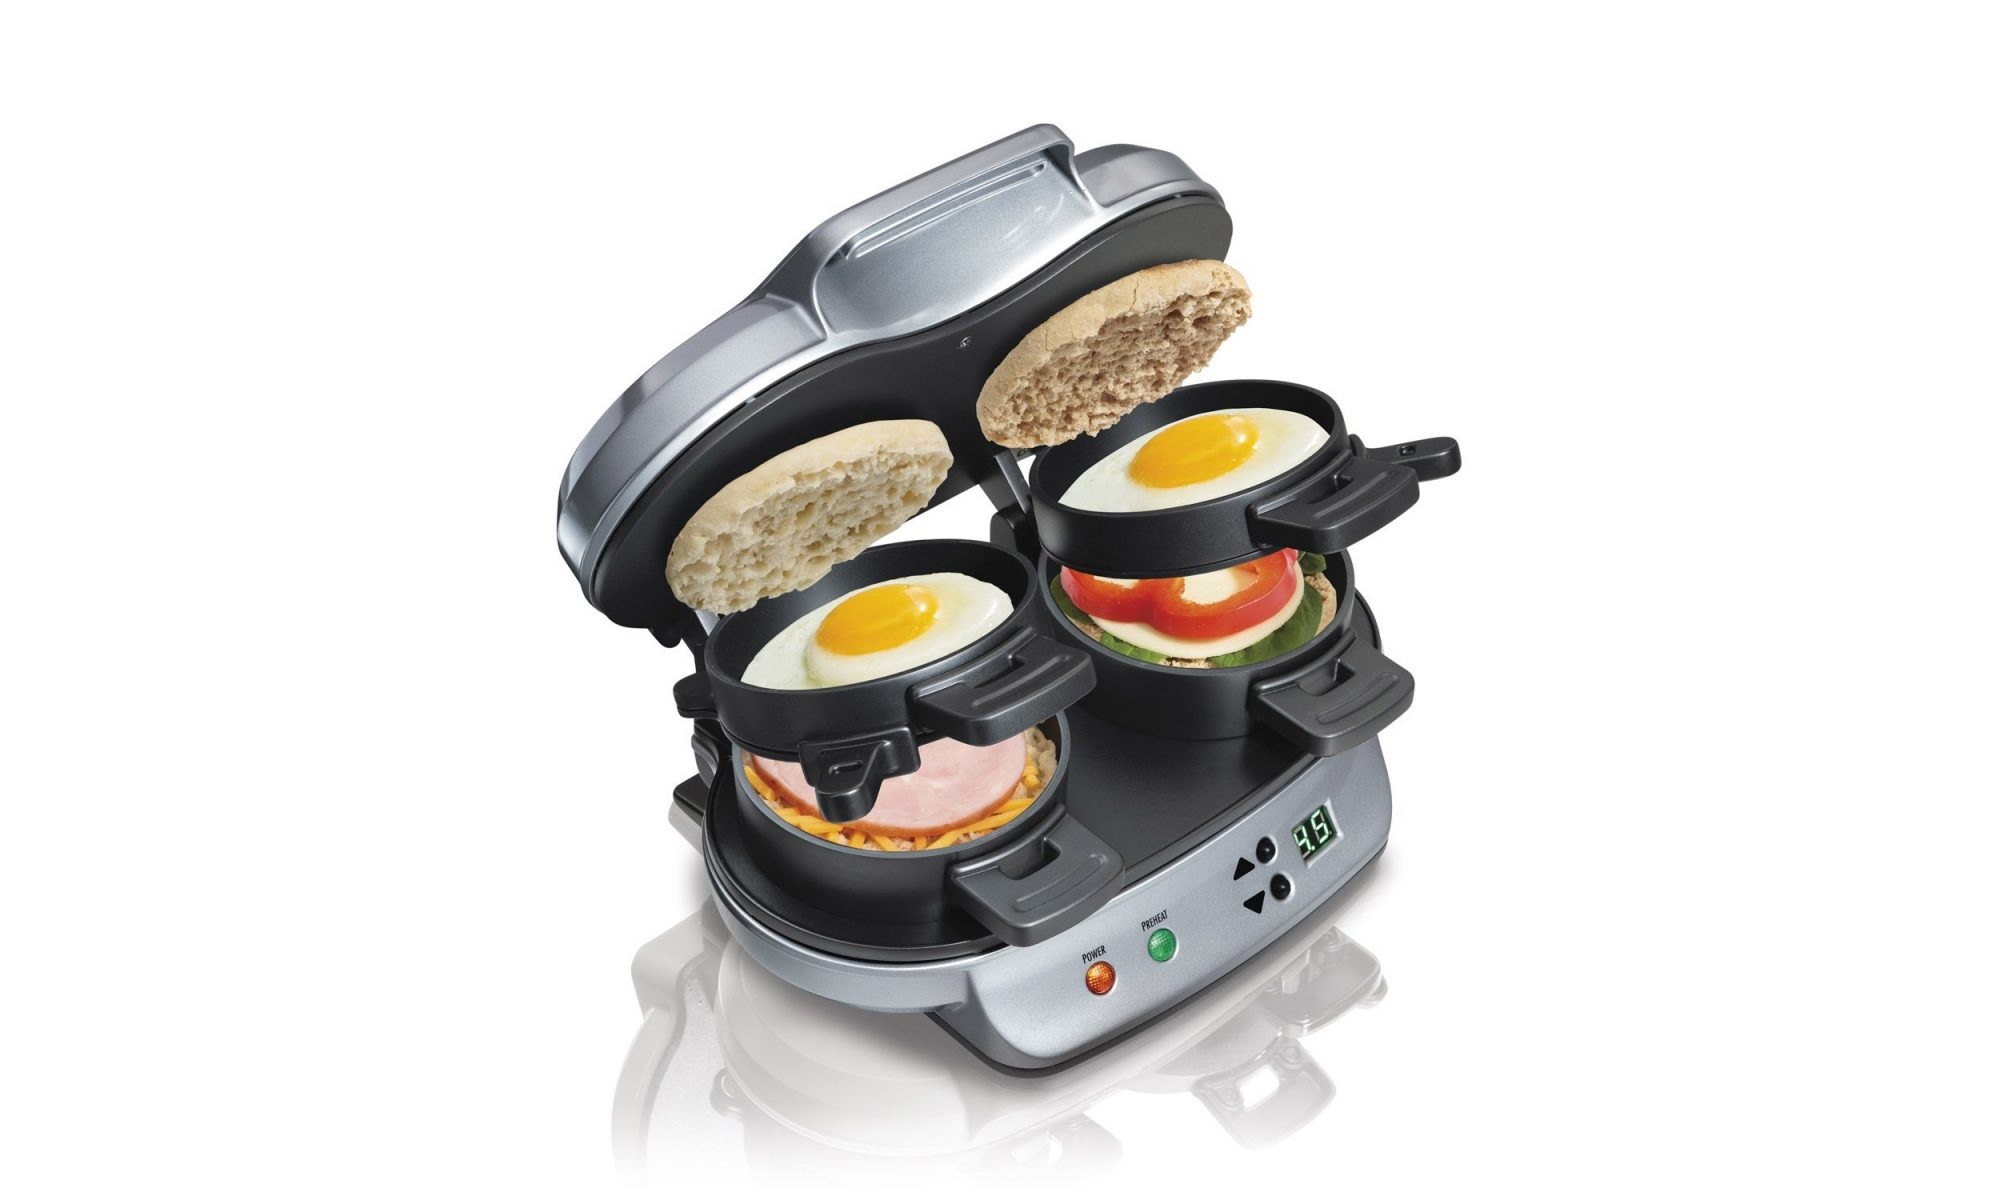 EC: This 2-in-1 Breakfast Sandwich Maker Will Double Your Egg and Cheese Consumption